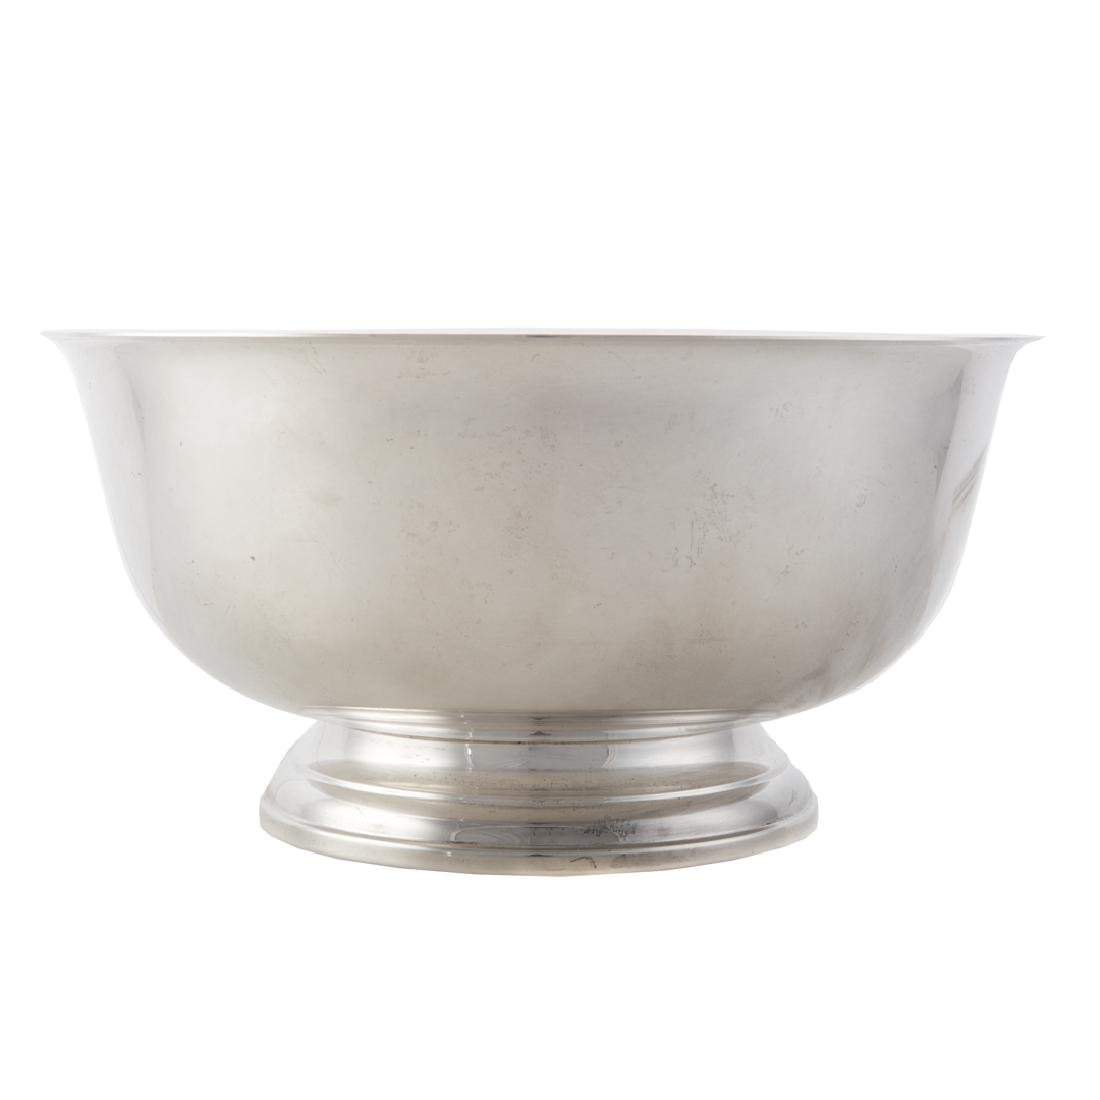 Paul Revere style sterling silver punch bowl